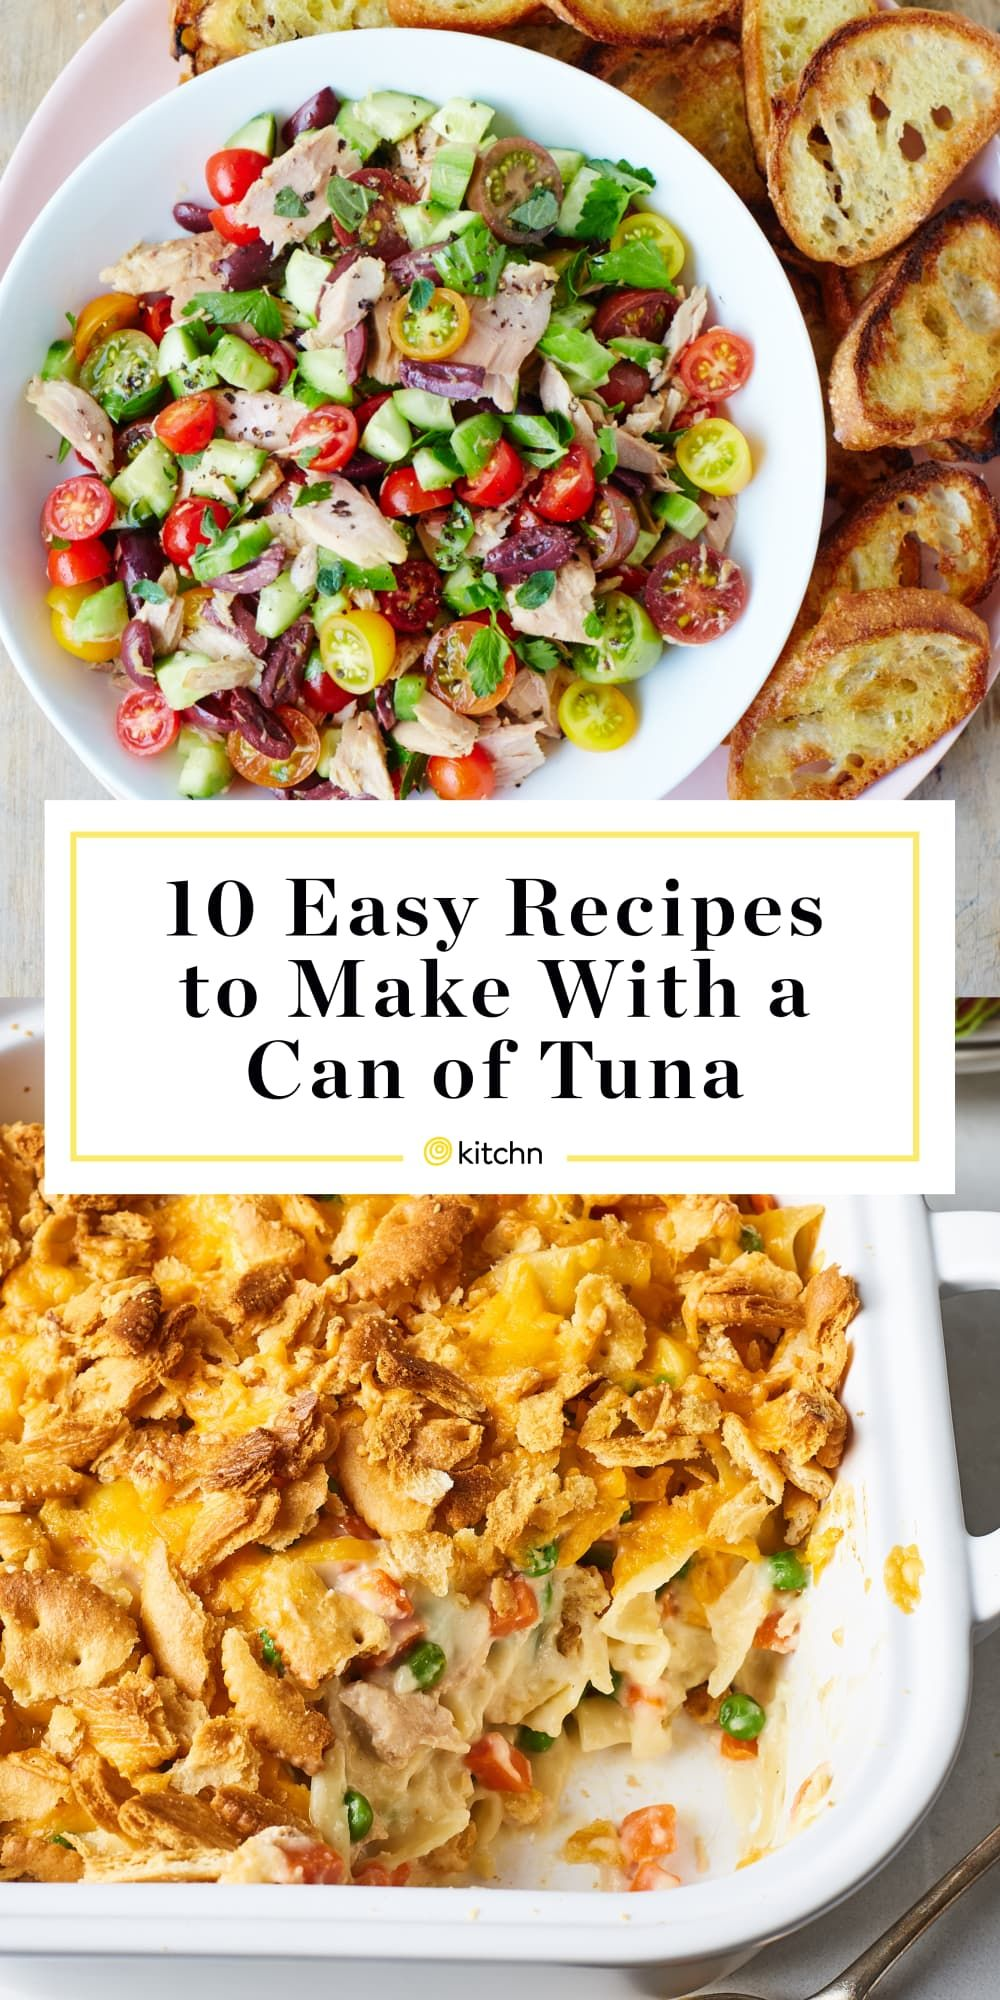 10 Tasty Ways To Turn Canned Tuna Into A Meal Healthy Tuna Recipes Tuna Recipes Healthy Dinners Can Tuna Recipes Healthy